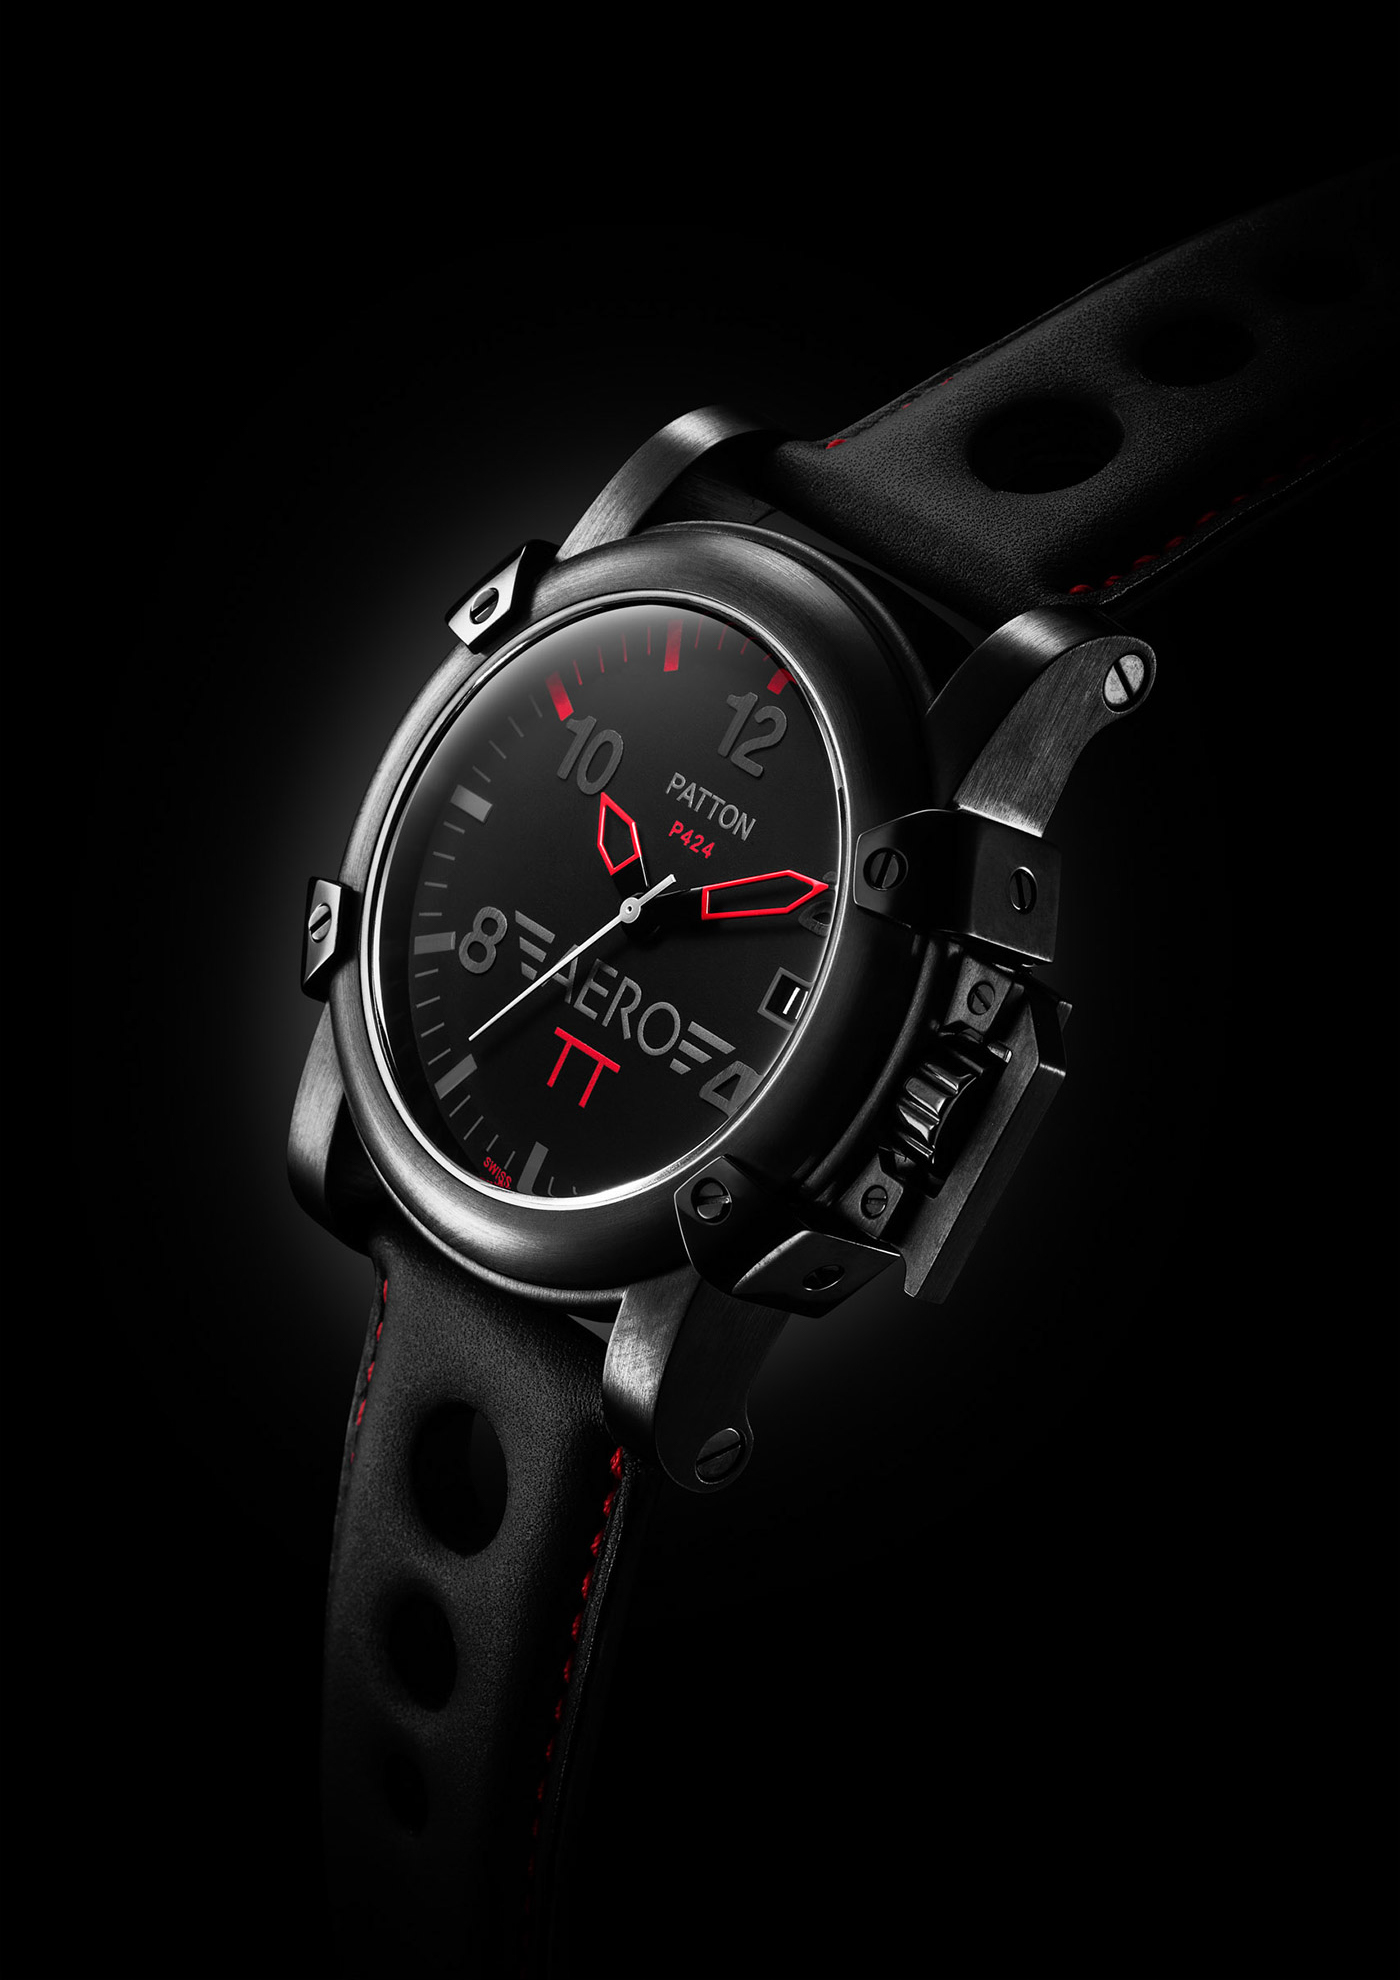 montres watches patton